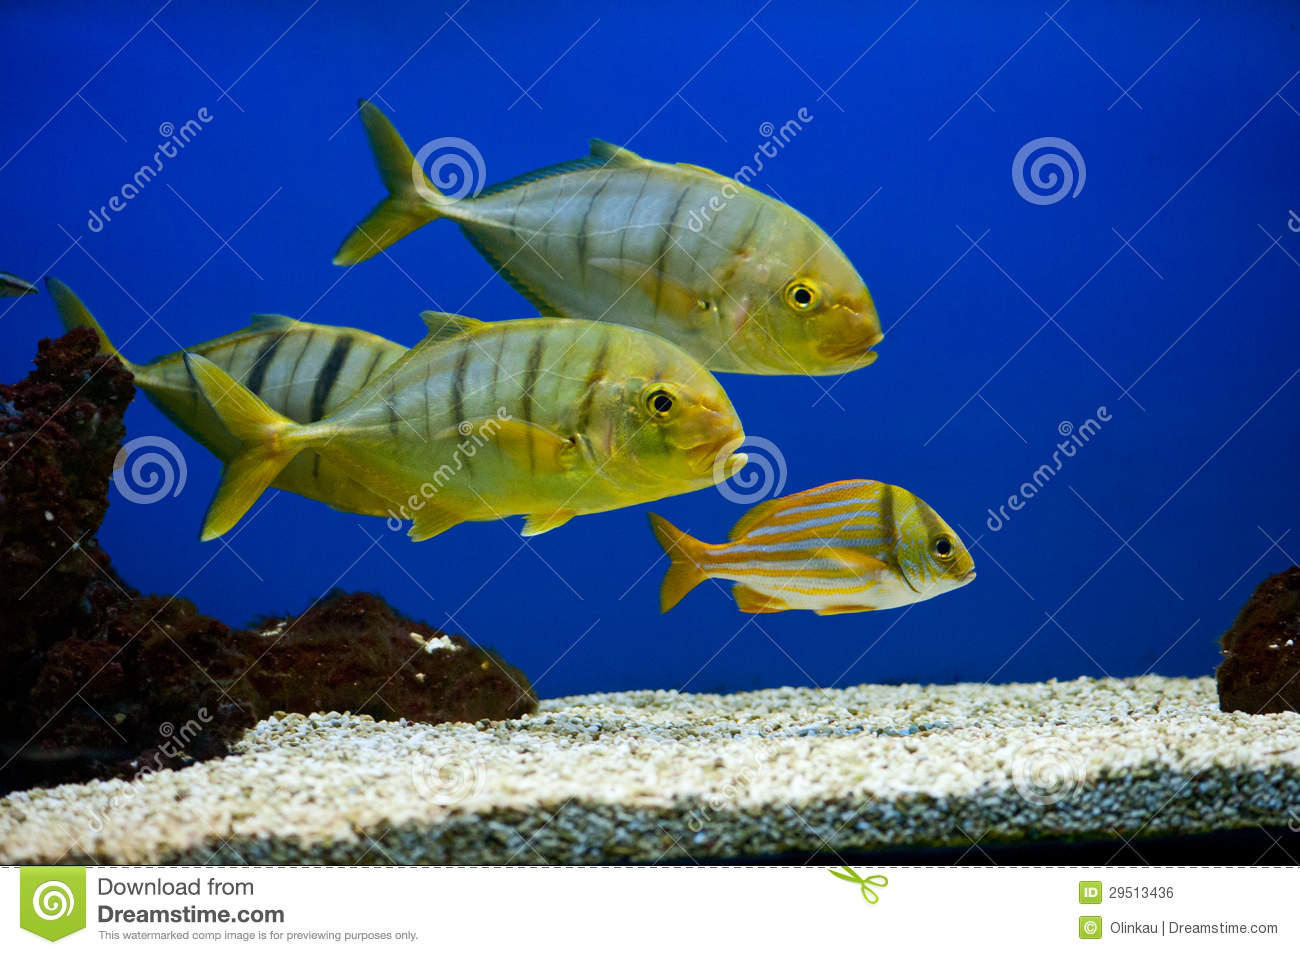 Black and yellow freshwater aquarium fish - Yellow Fish With Black Stripes Royalty Free Stock Image